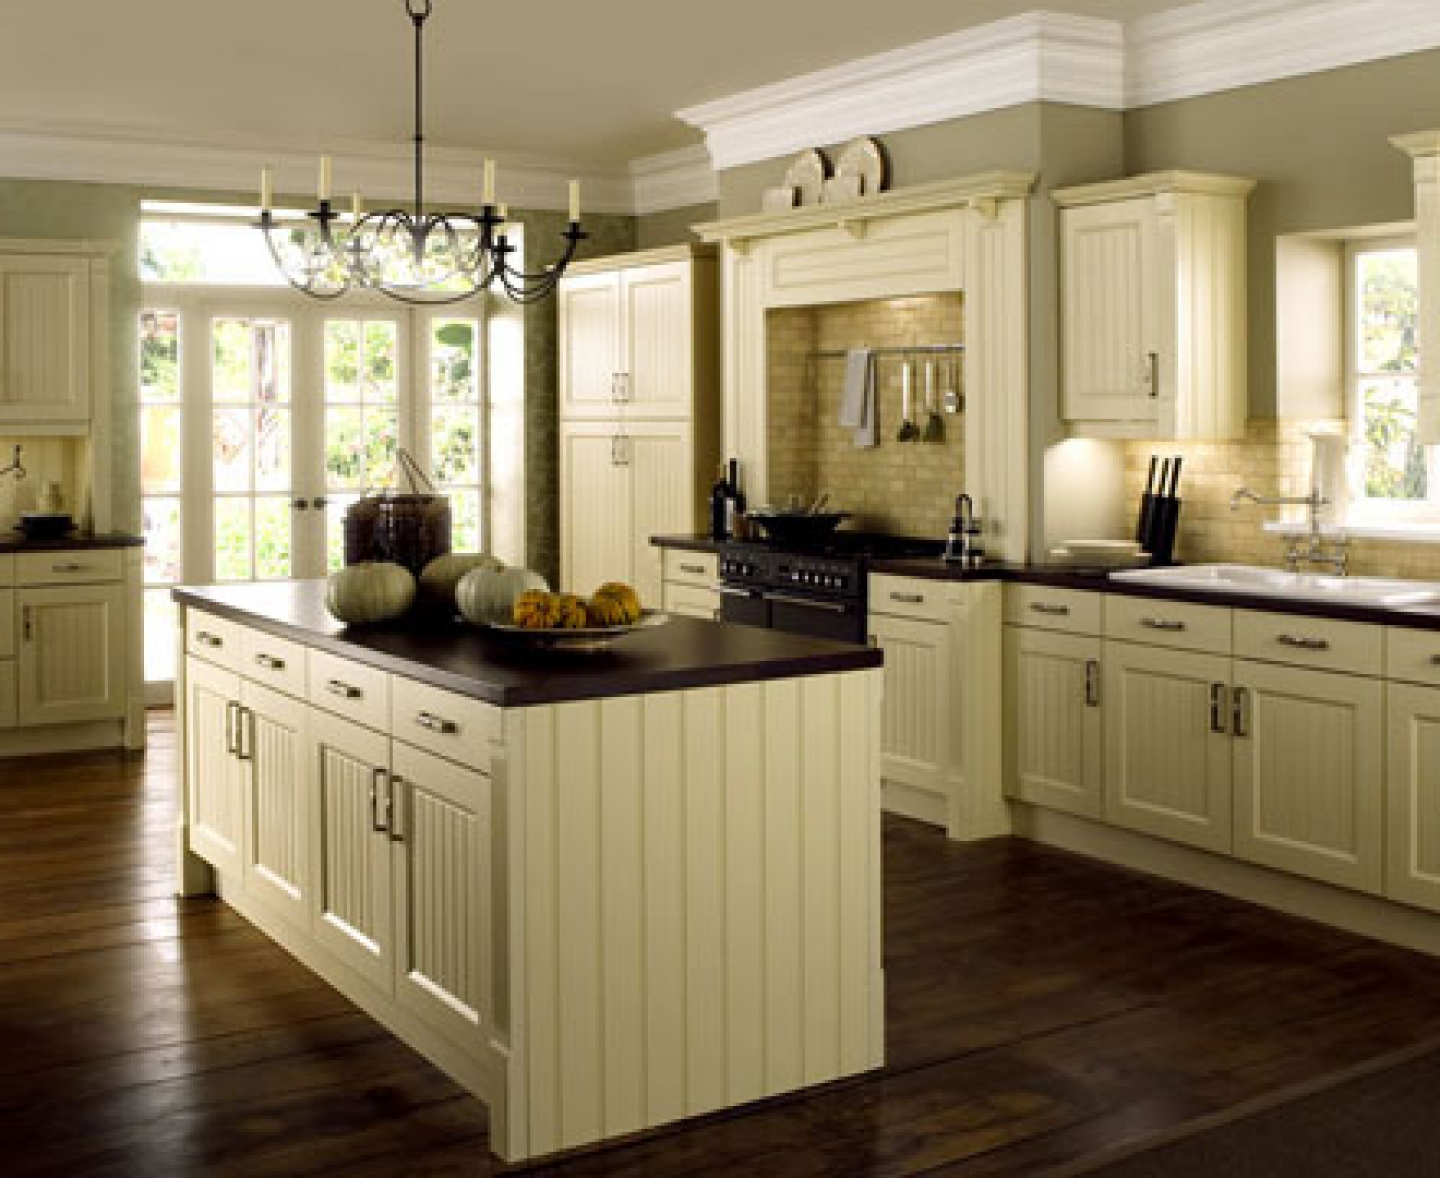 25 TRADITIONAL KITCHEN DESIGNS FOR A ROYAL LOOK ... on Traditional Kitchen Decor  id=75474